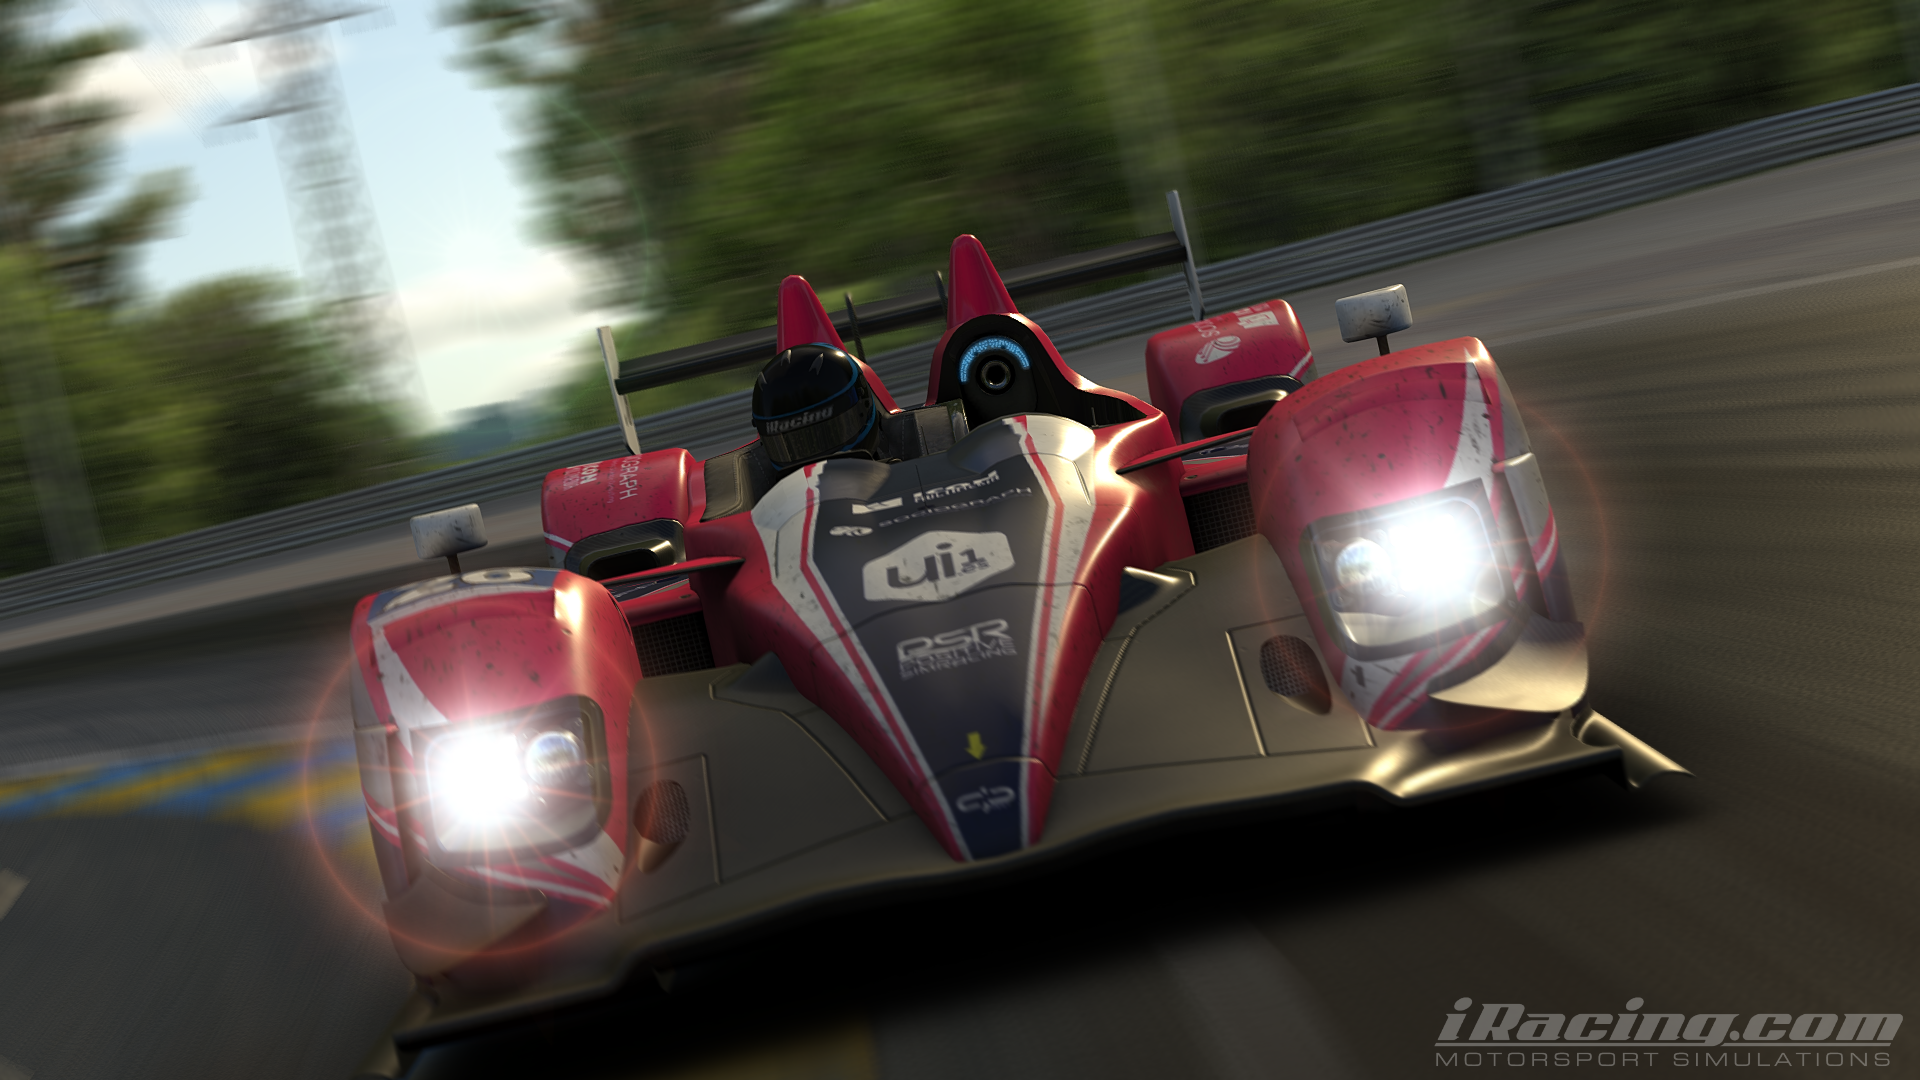 iRacing 24 h Le Mans 2019 – Fantastic racing with Max Verstappen on track